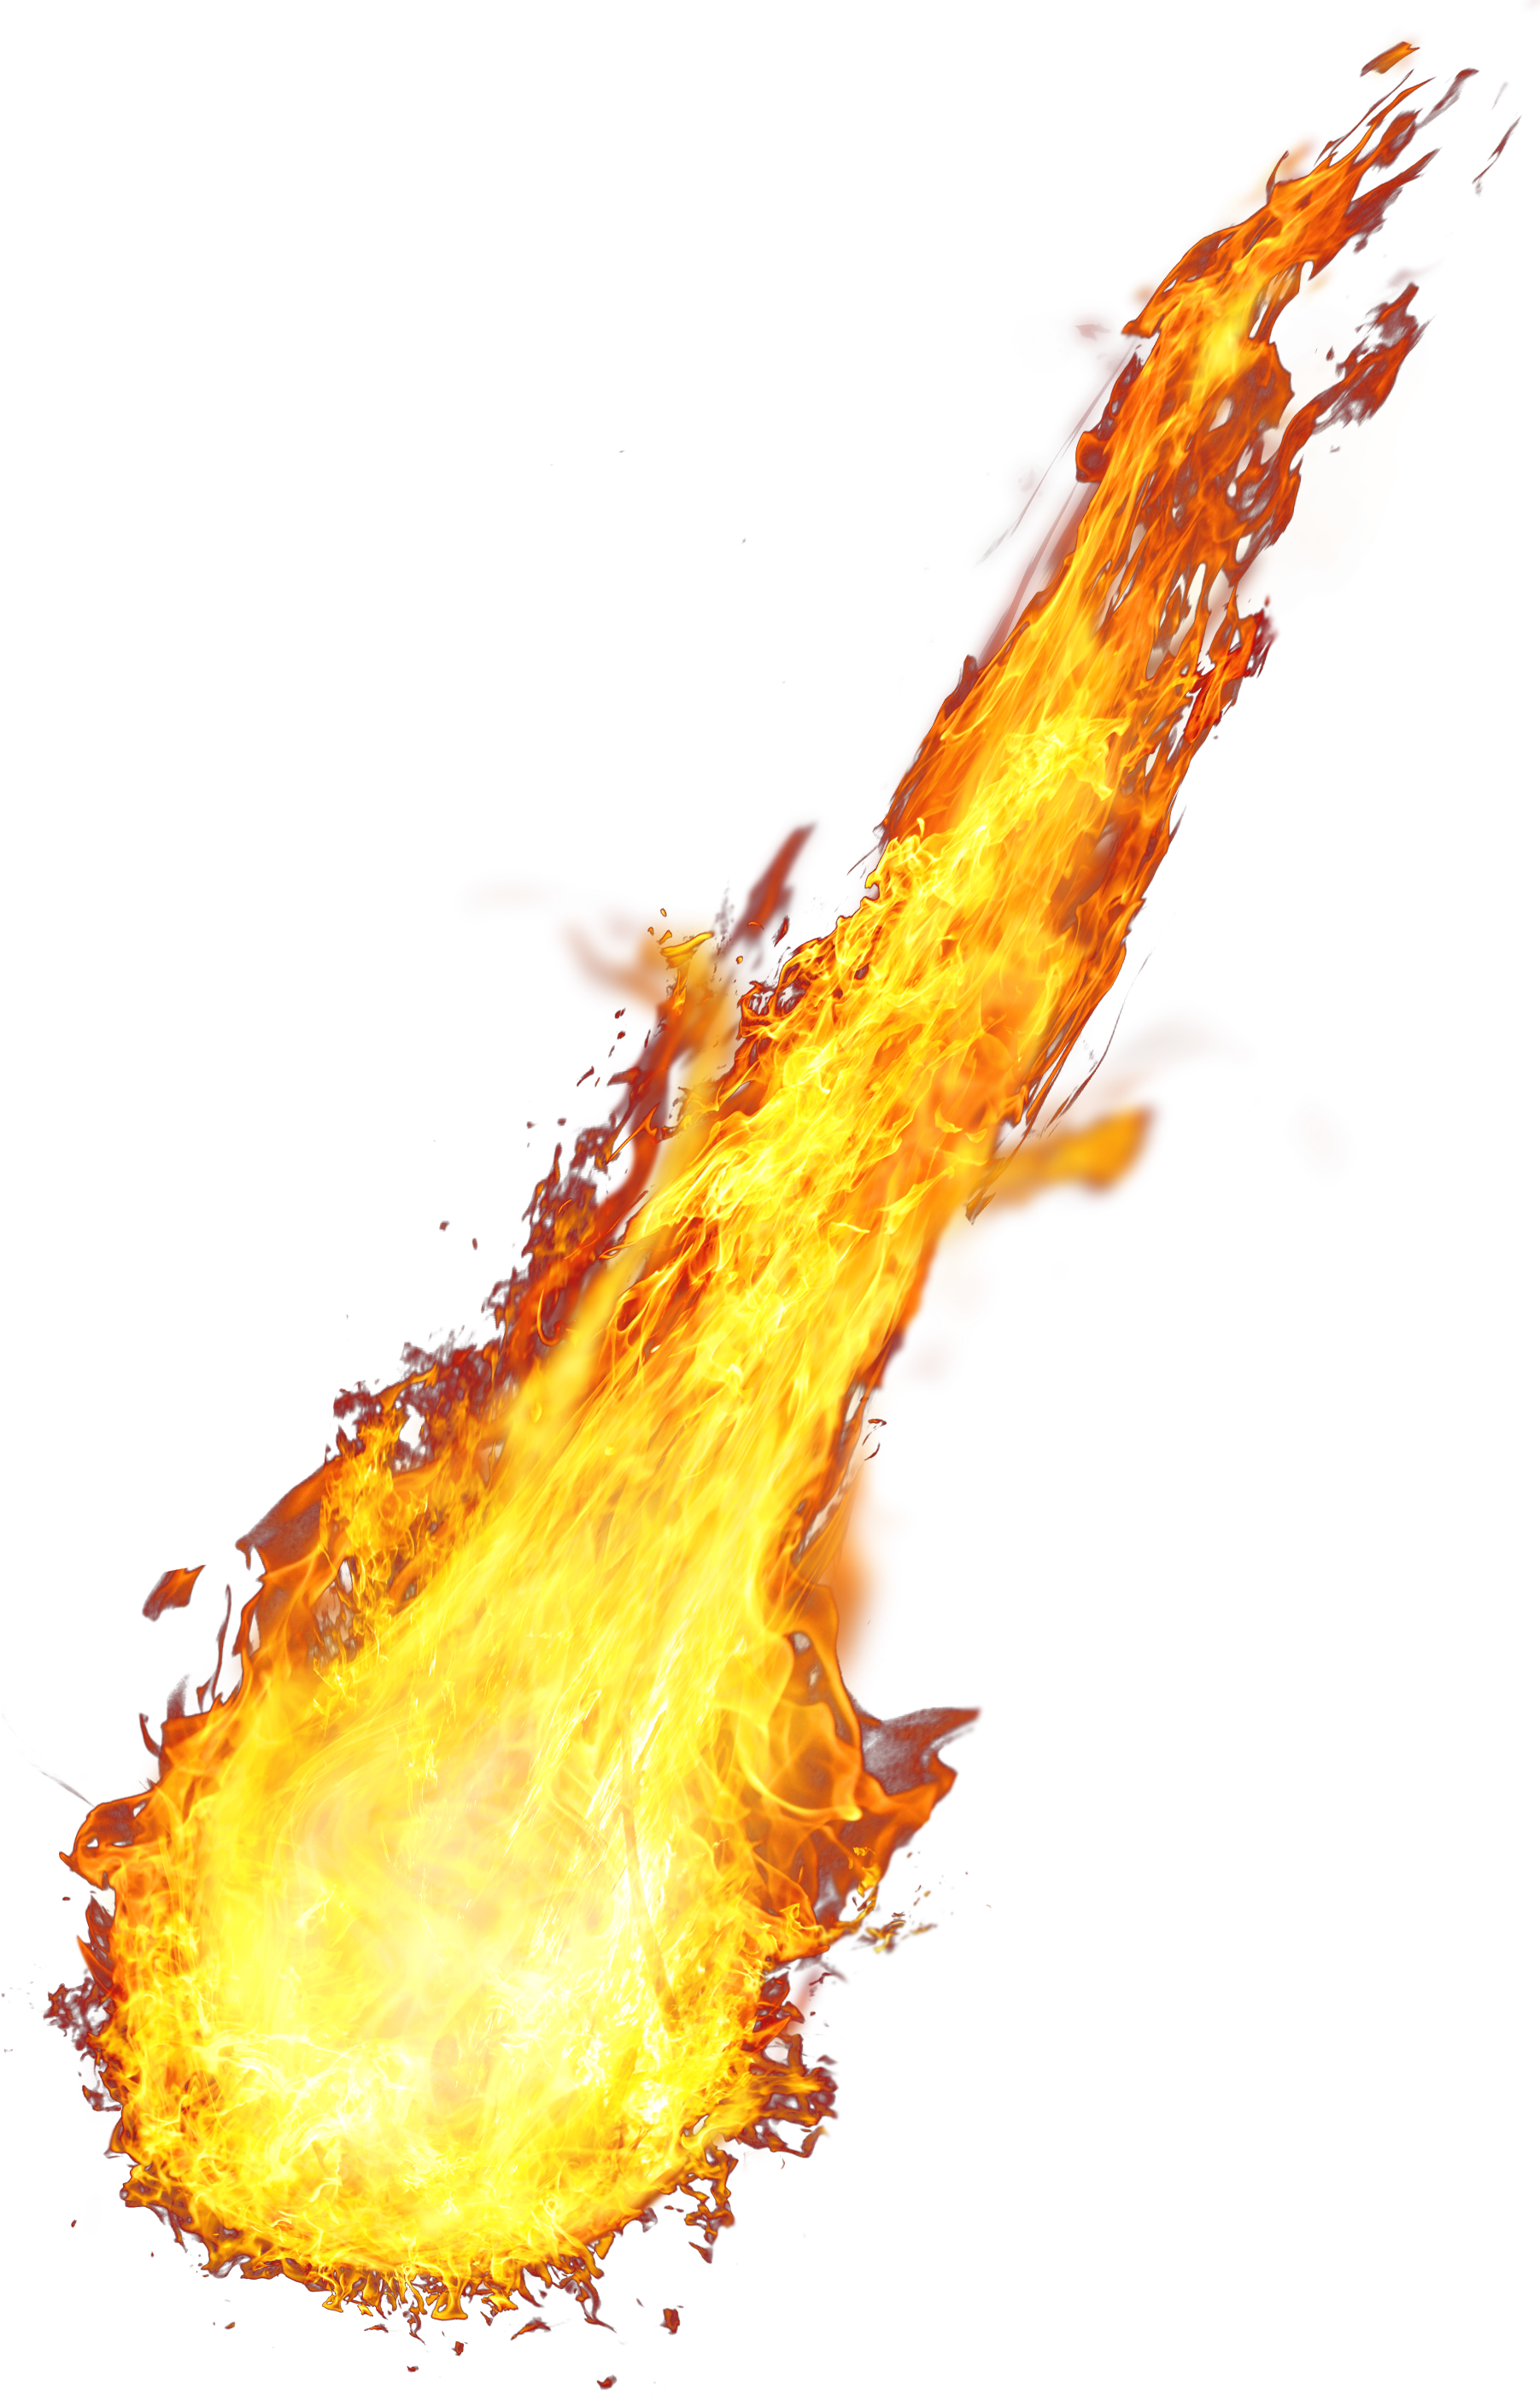 Fire Png Image Png Images Studio Background Images Background For Photography